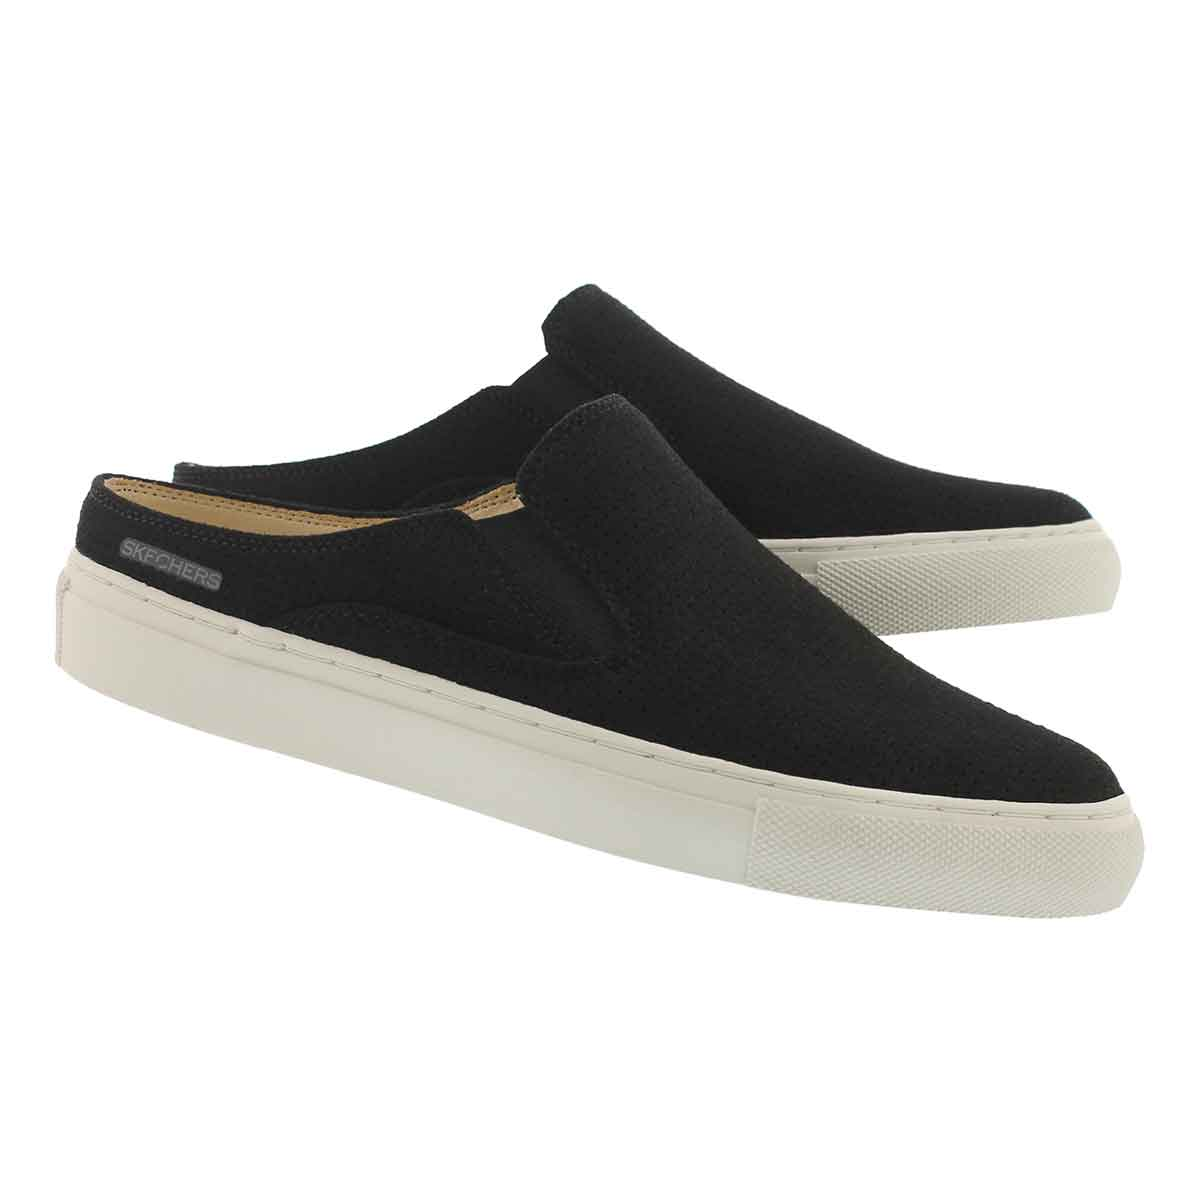 Lds Vaso black open back slip on shoe